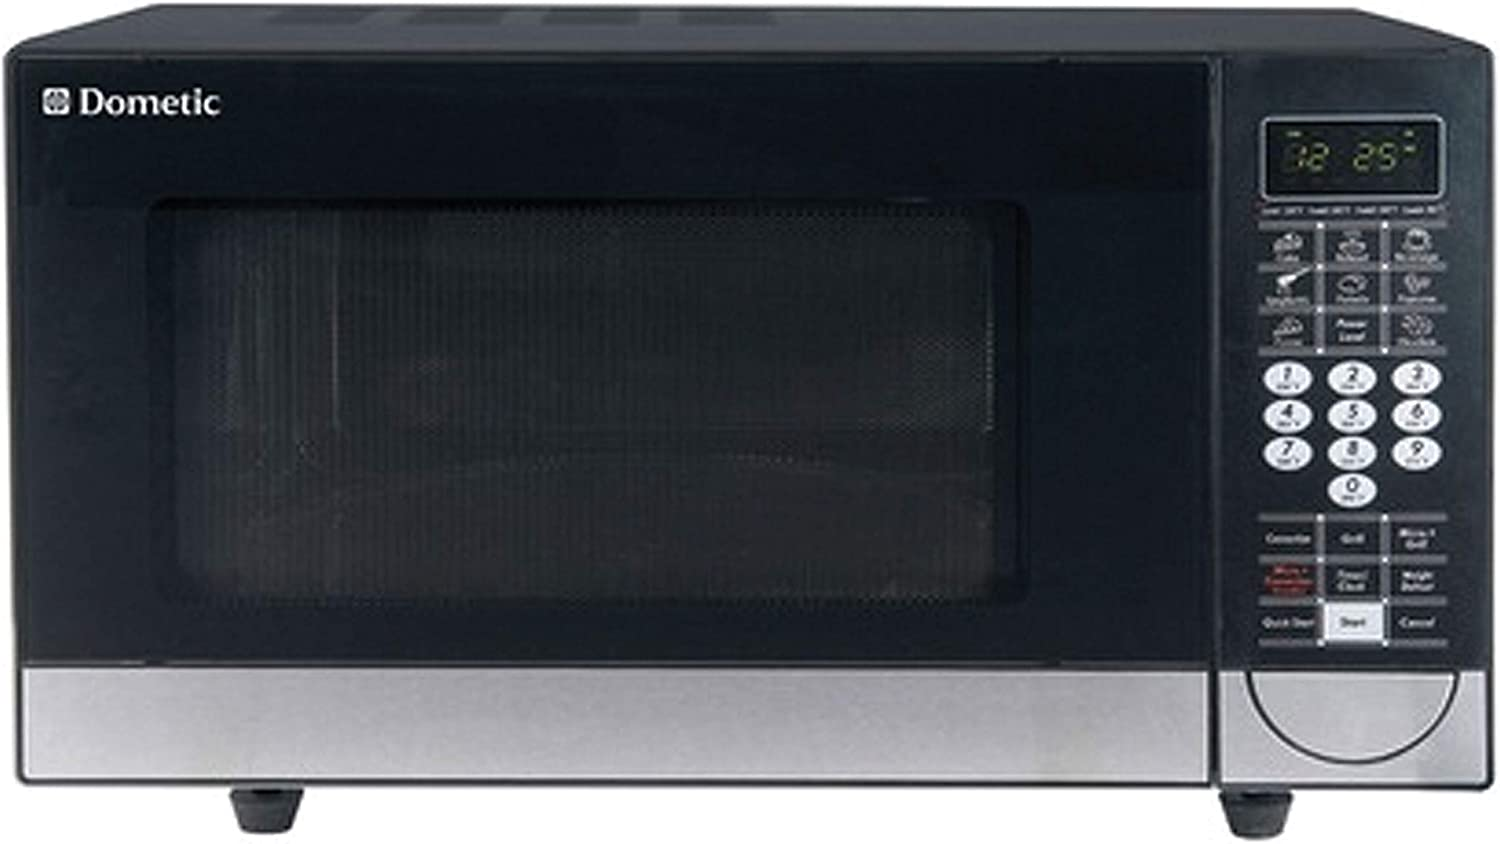 Dometic DCMC11B.F Convection Microwave Oven, Black